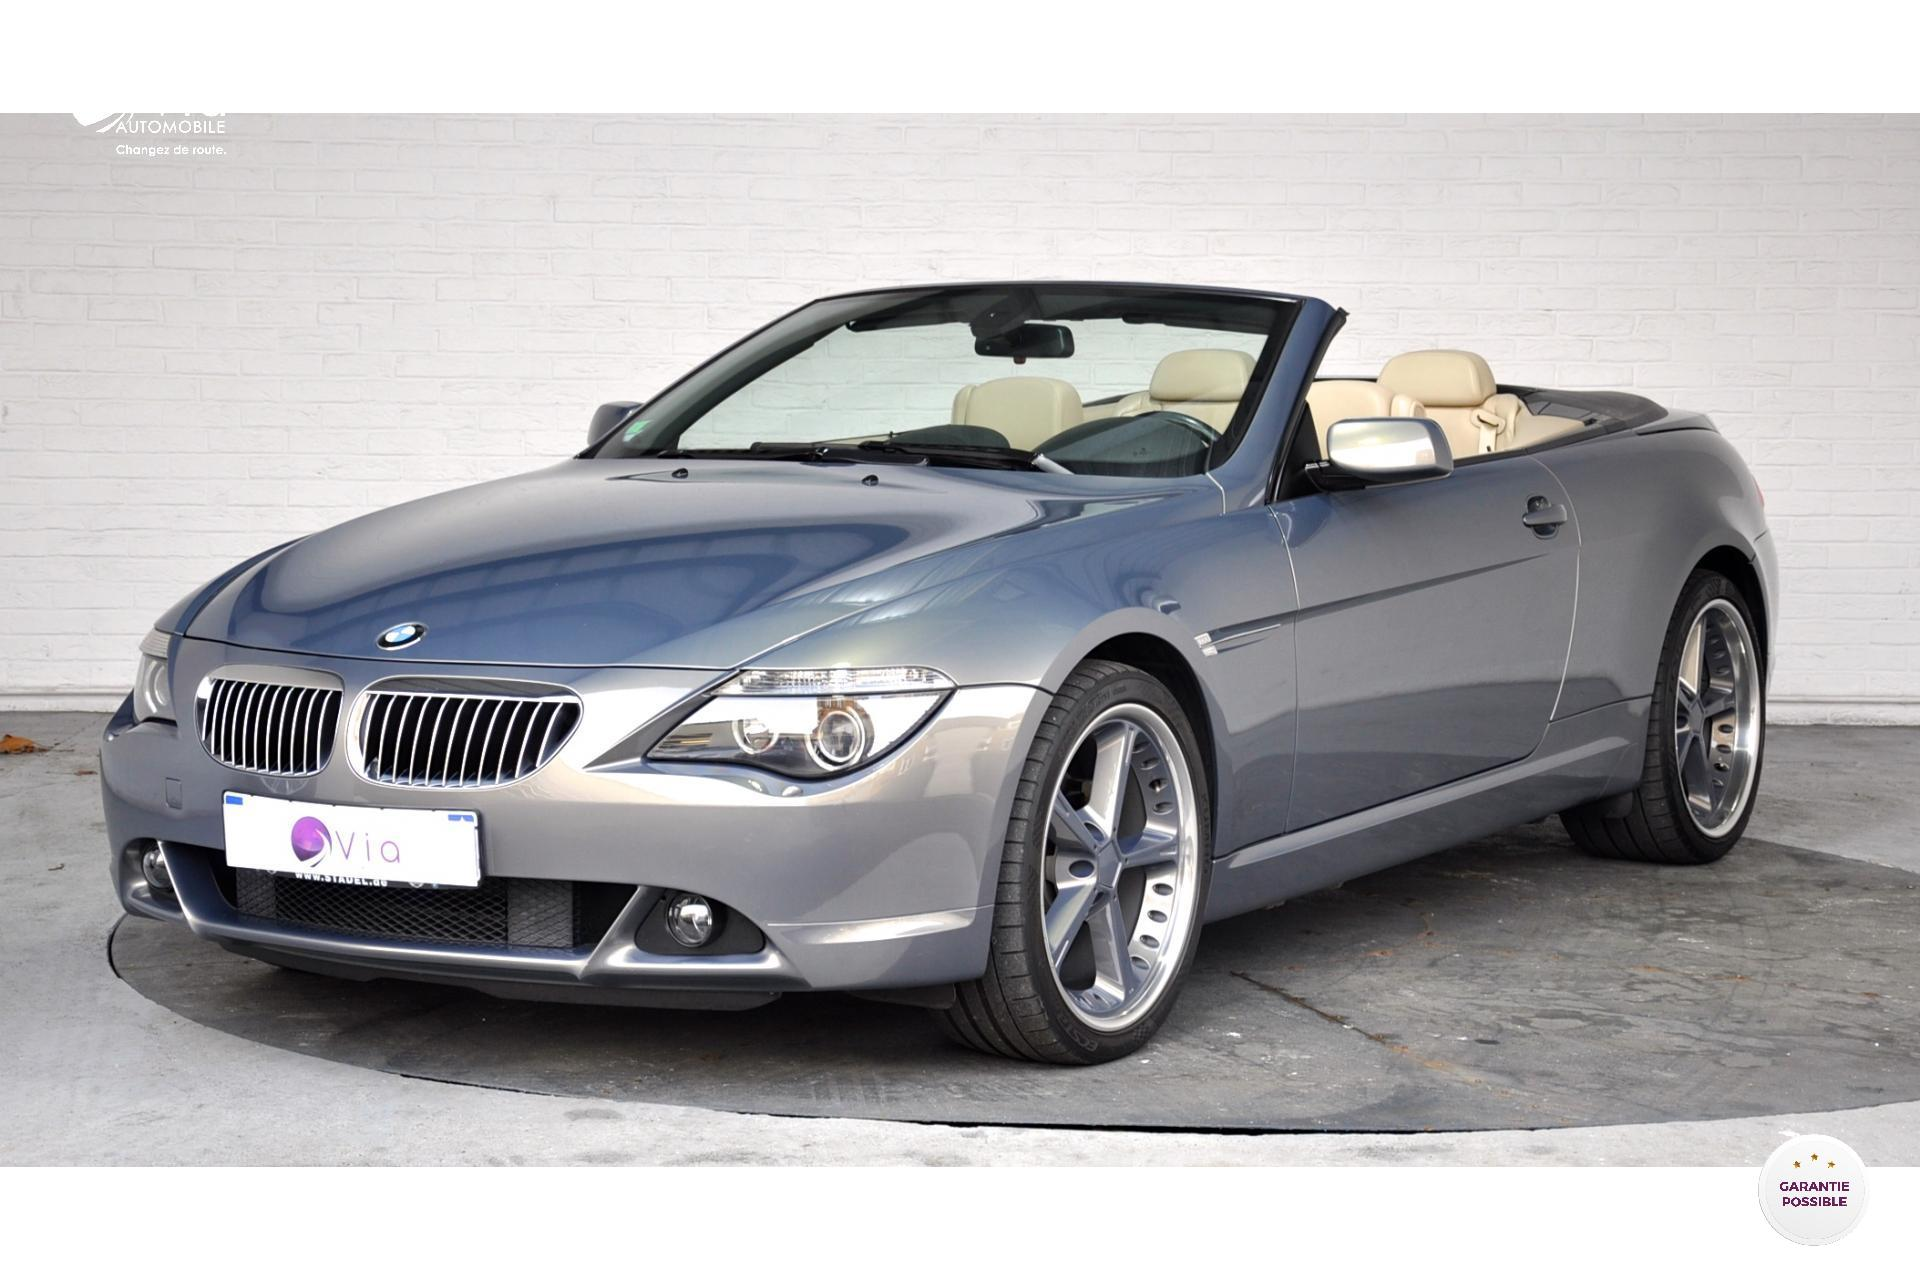 BMW-SERIE 6-630i Cabriolet E64 Pack Luxe